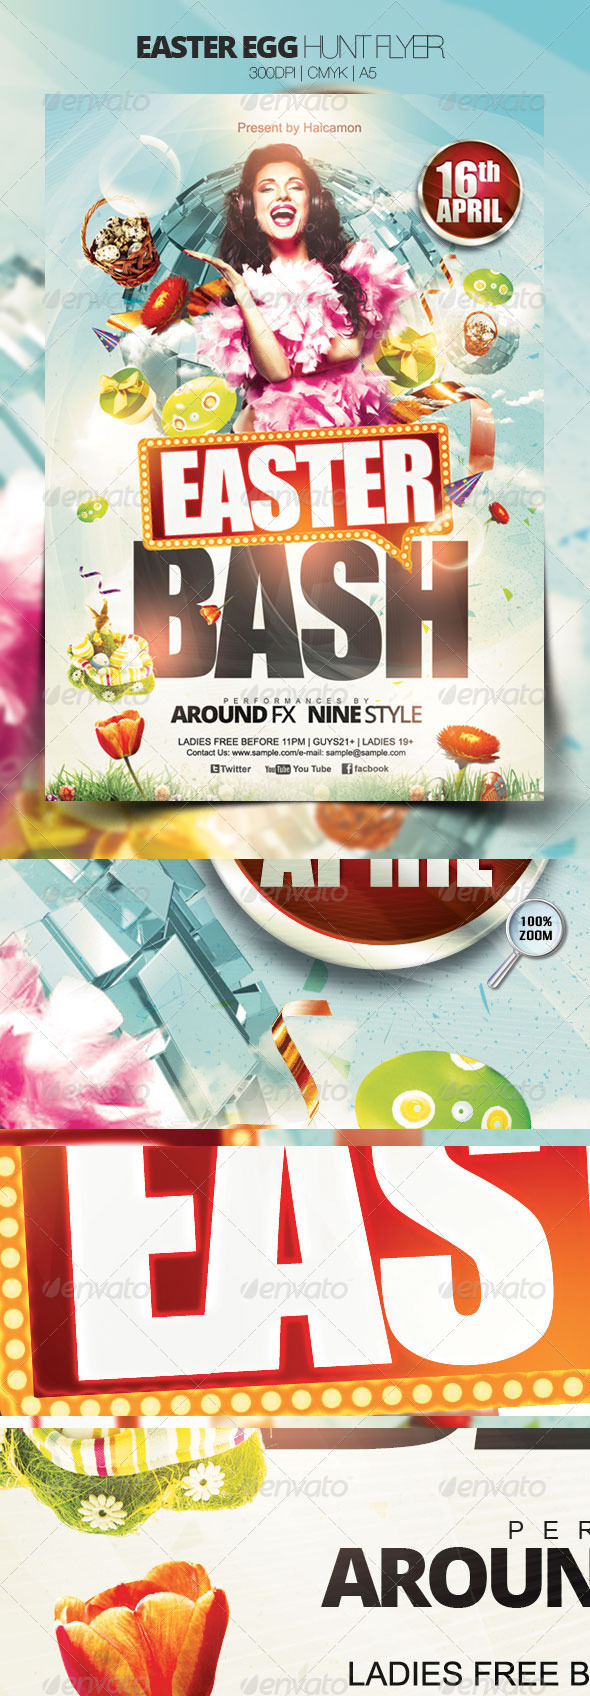 GraphicRiver Easter Egg Hunt Flyer 3990347